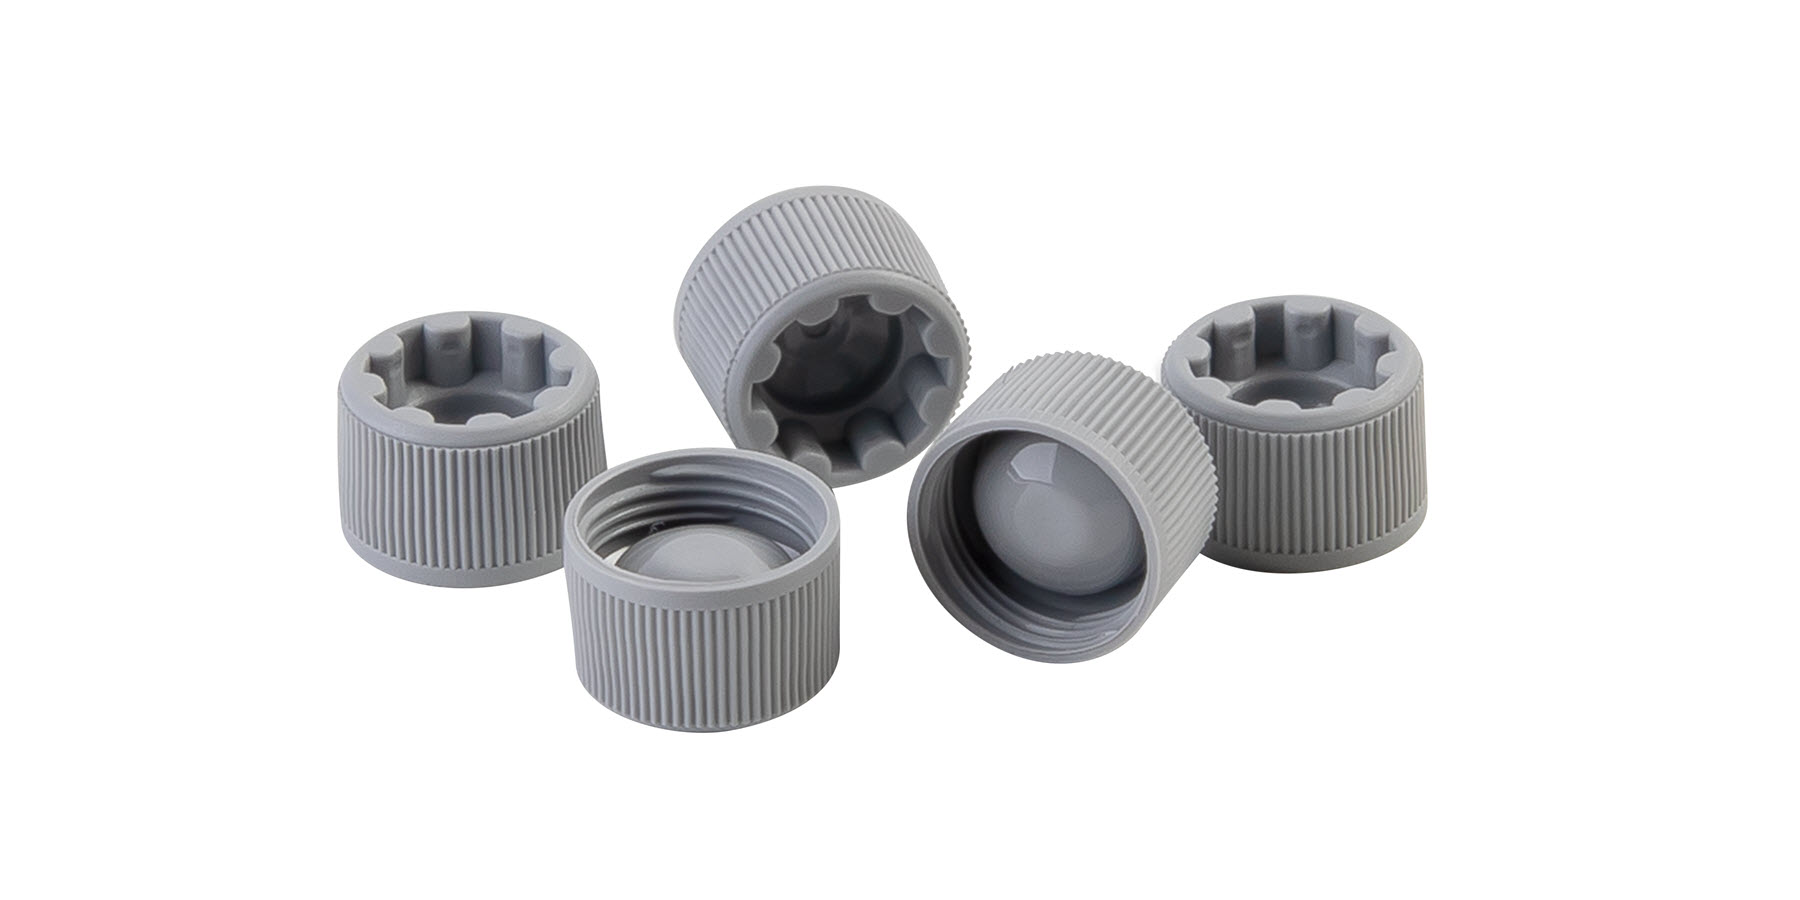 Novel Screw Caps Optimized for Automated Handling